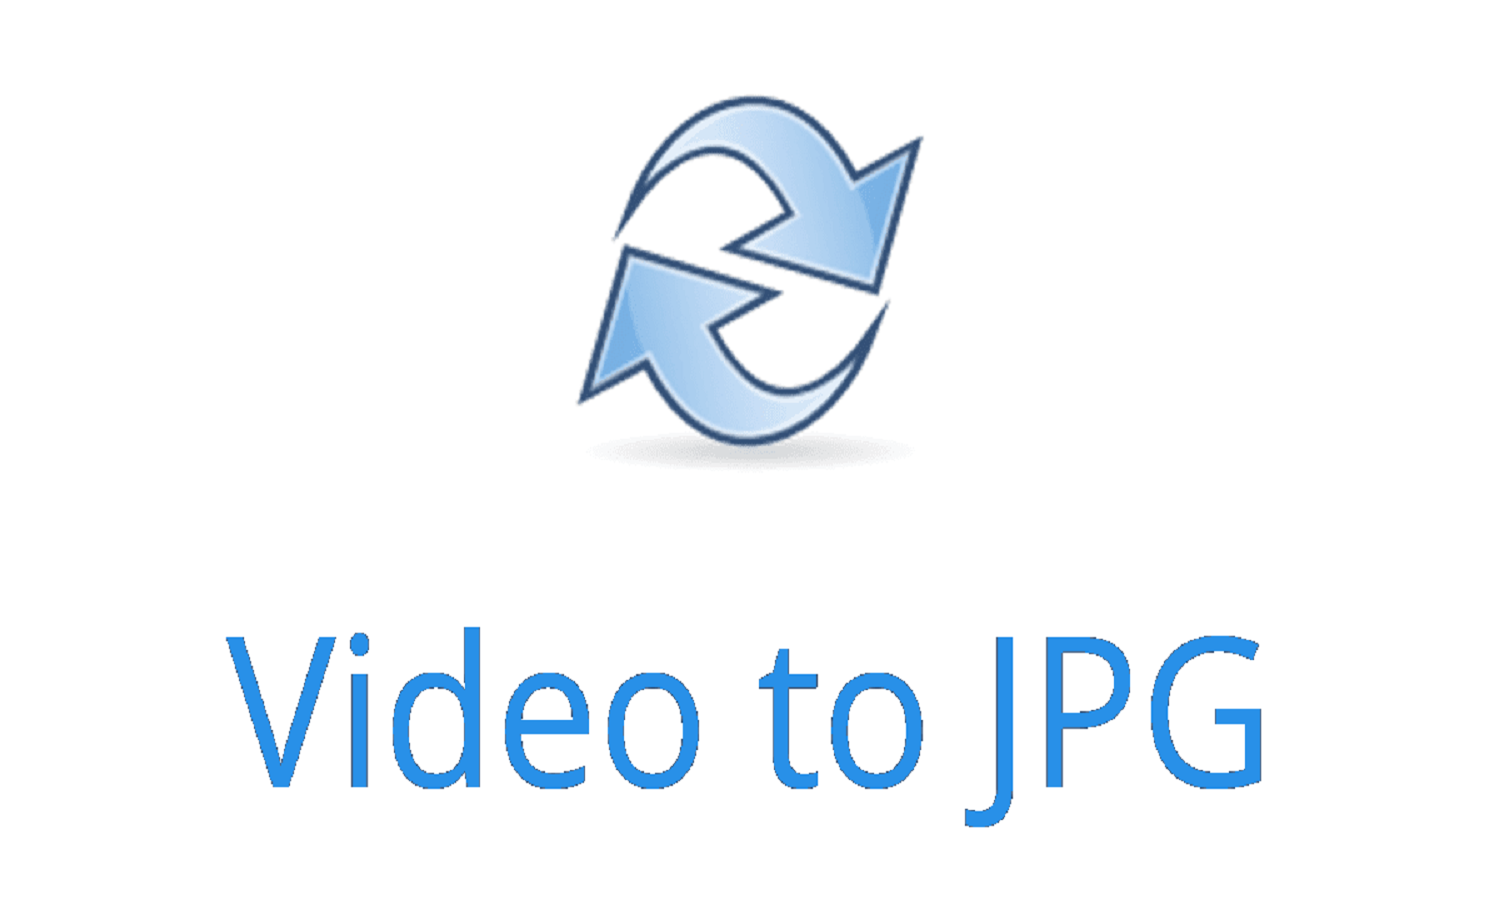 Learn How to Convert Video to JPG Image Easily